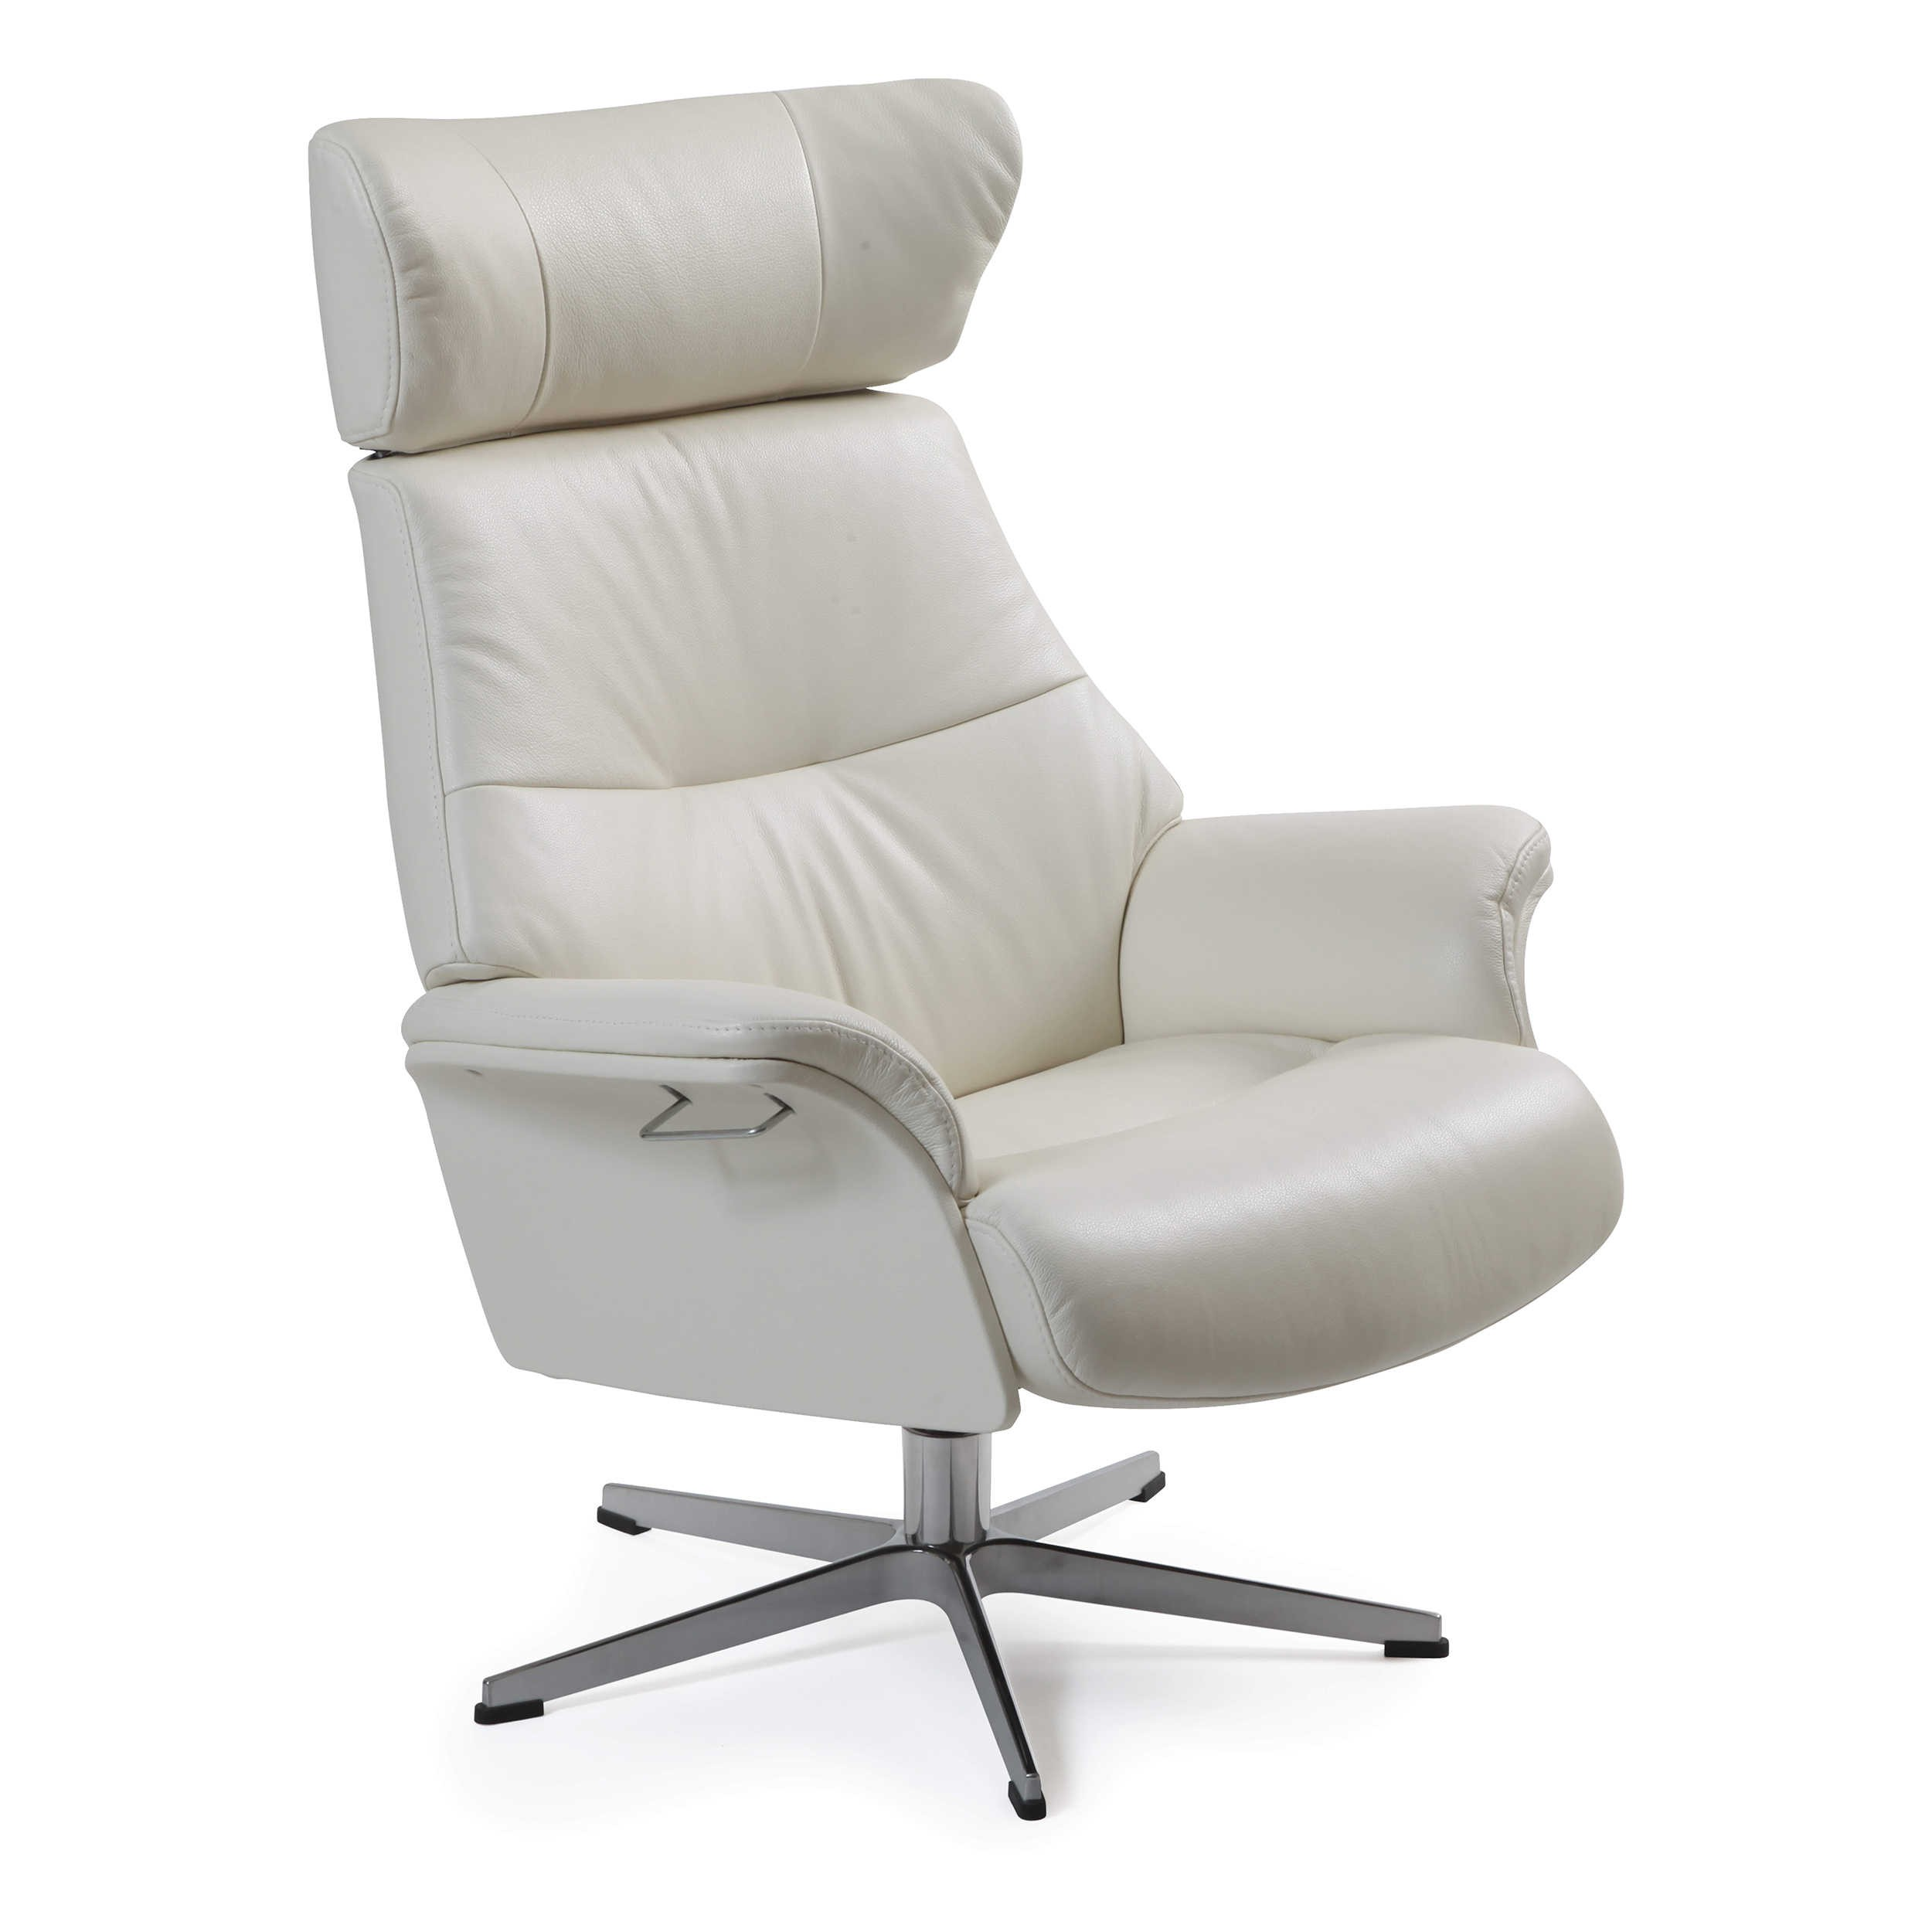 Air Lounge Sessel Air Sessel